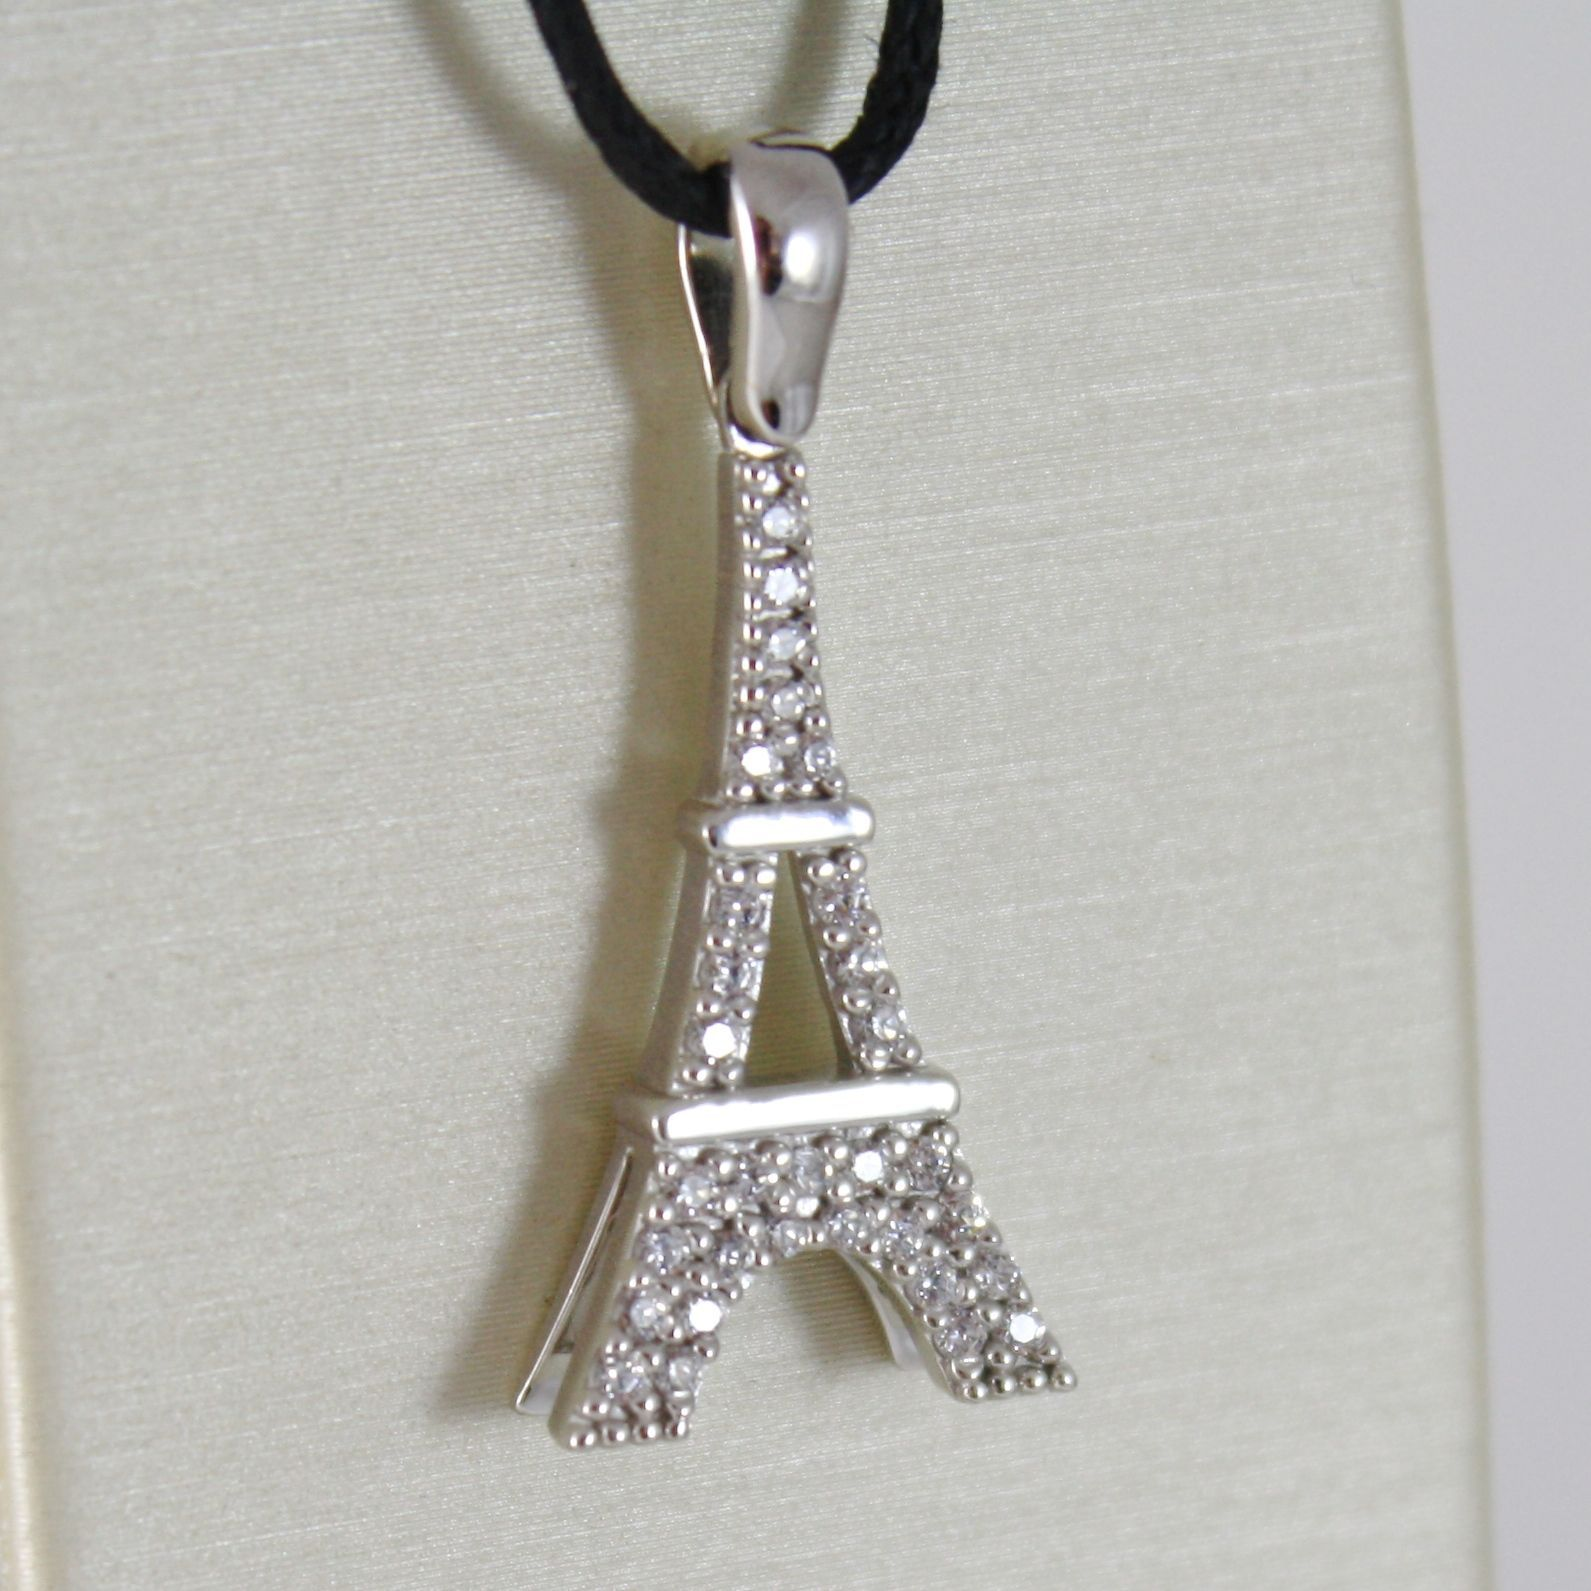 White Gold Pendant 750 18k, Eiffel Tower, 2.8 Cm Long with Zirconia